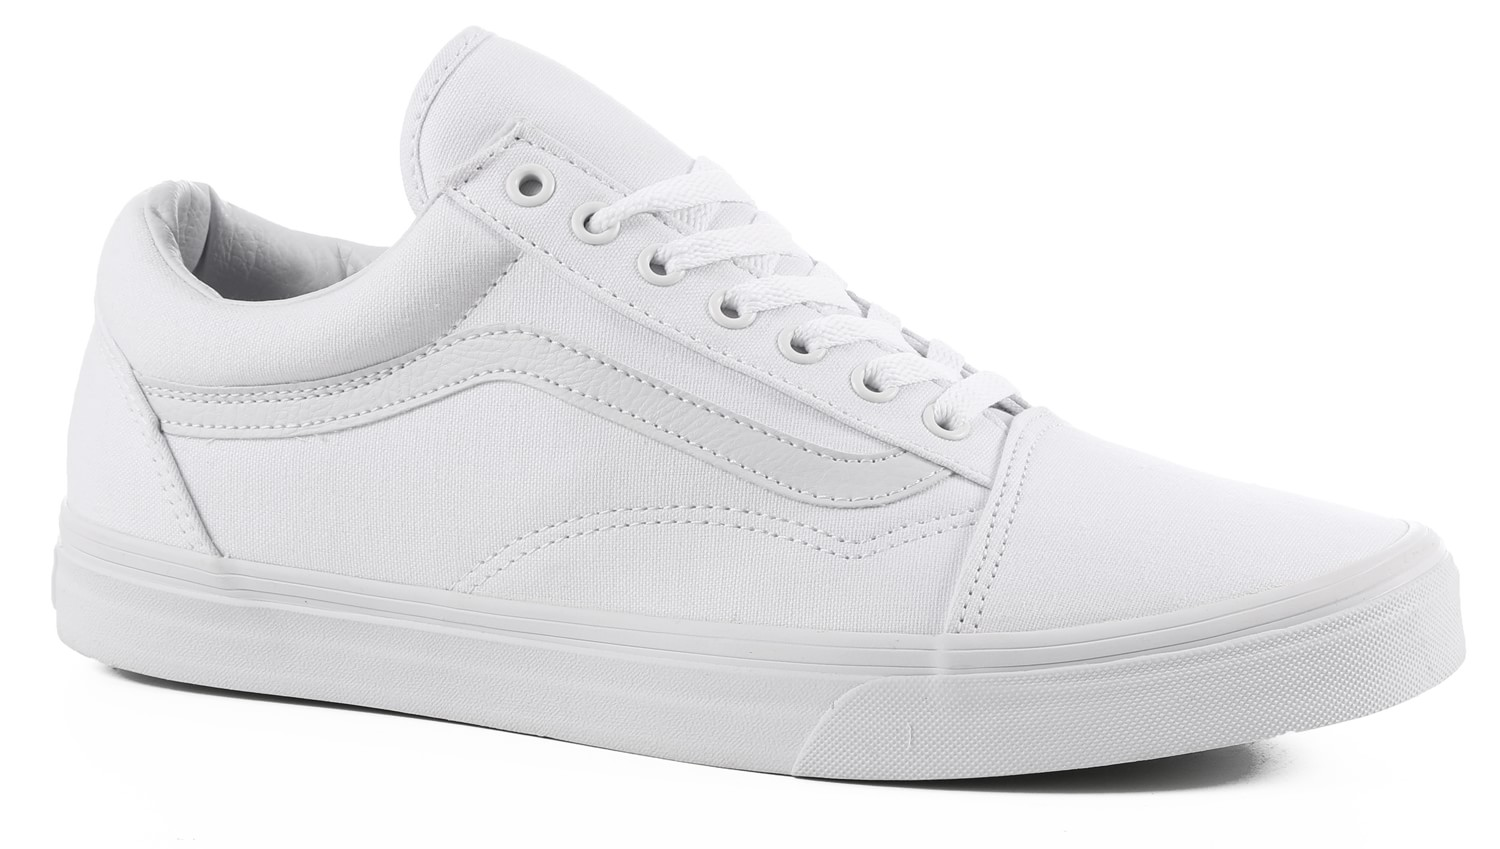 Are Vans Shoes True To Size